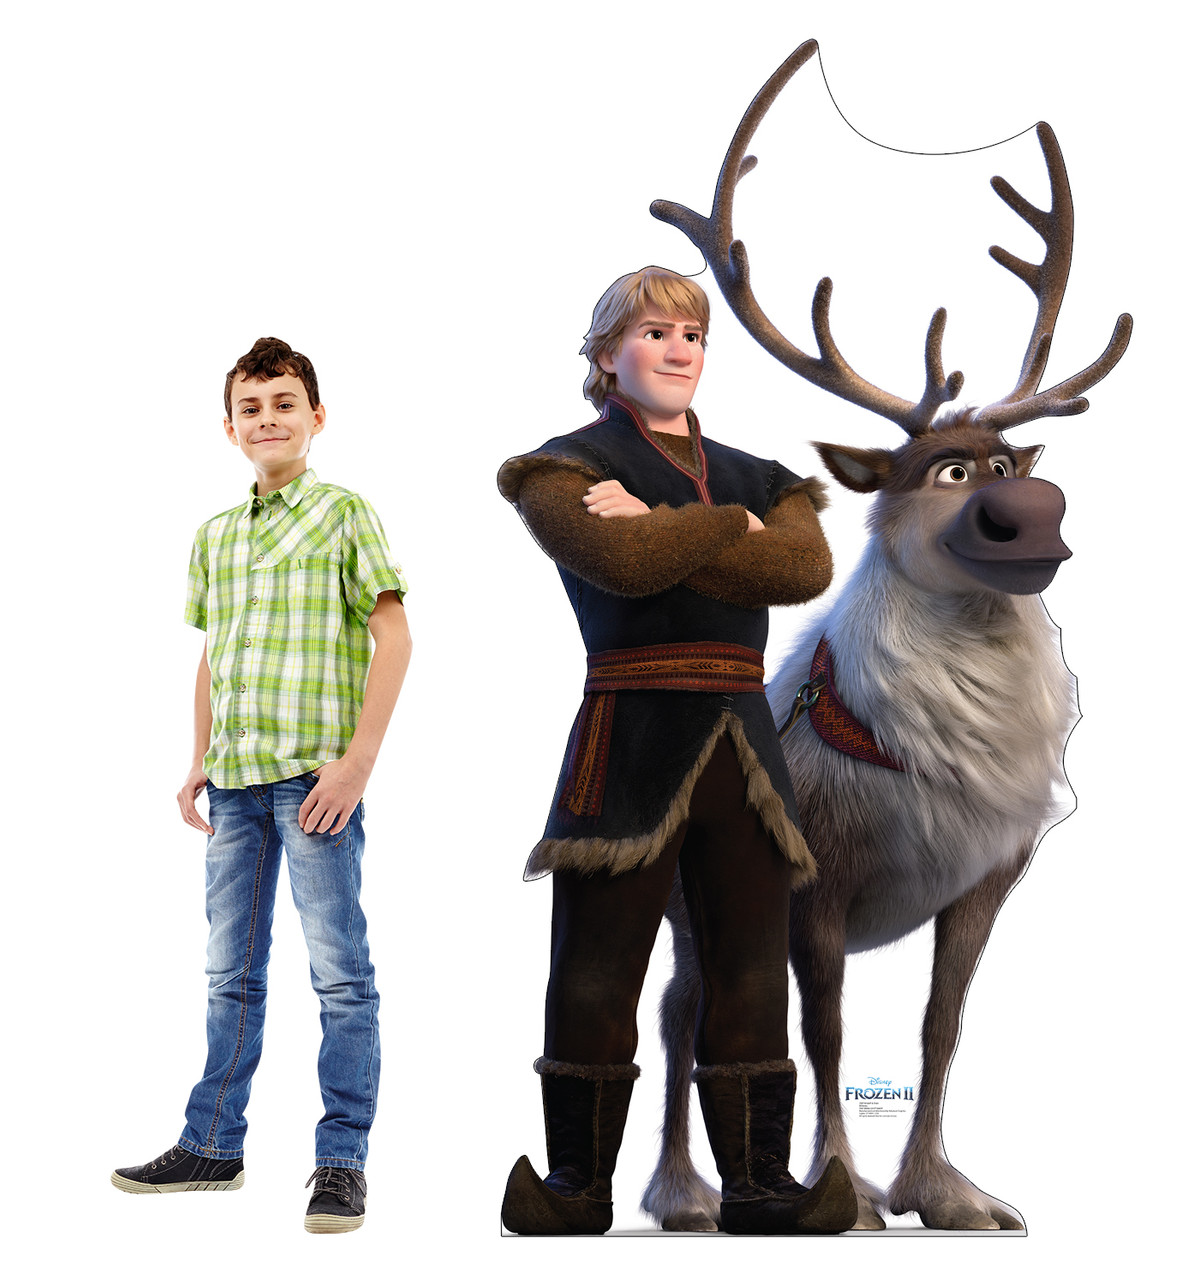 Life-size cardboard standee of Kristoff & Sven from Disney's Frozen 2) with model.